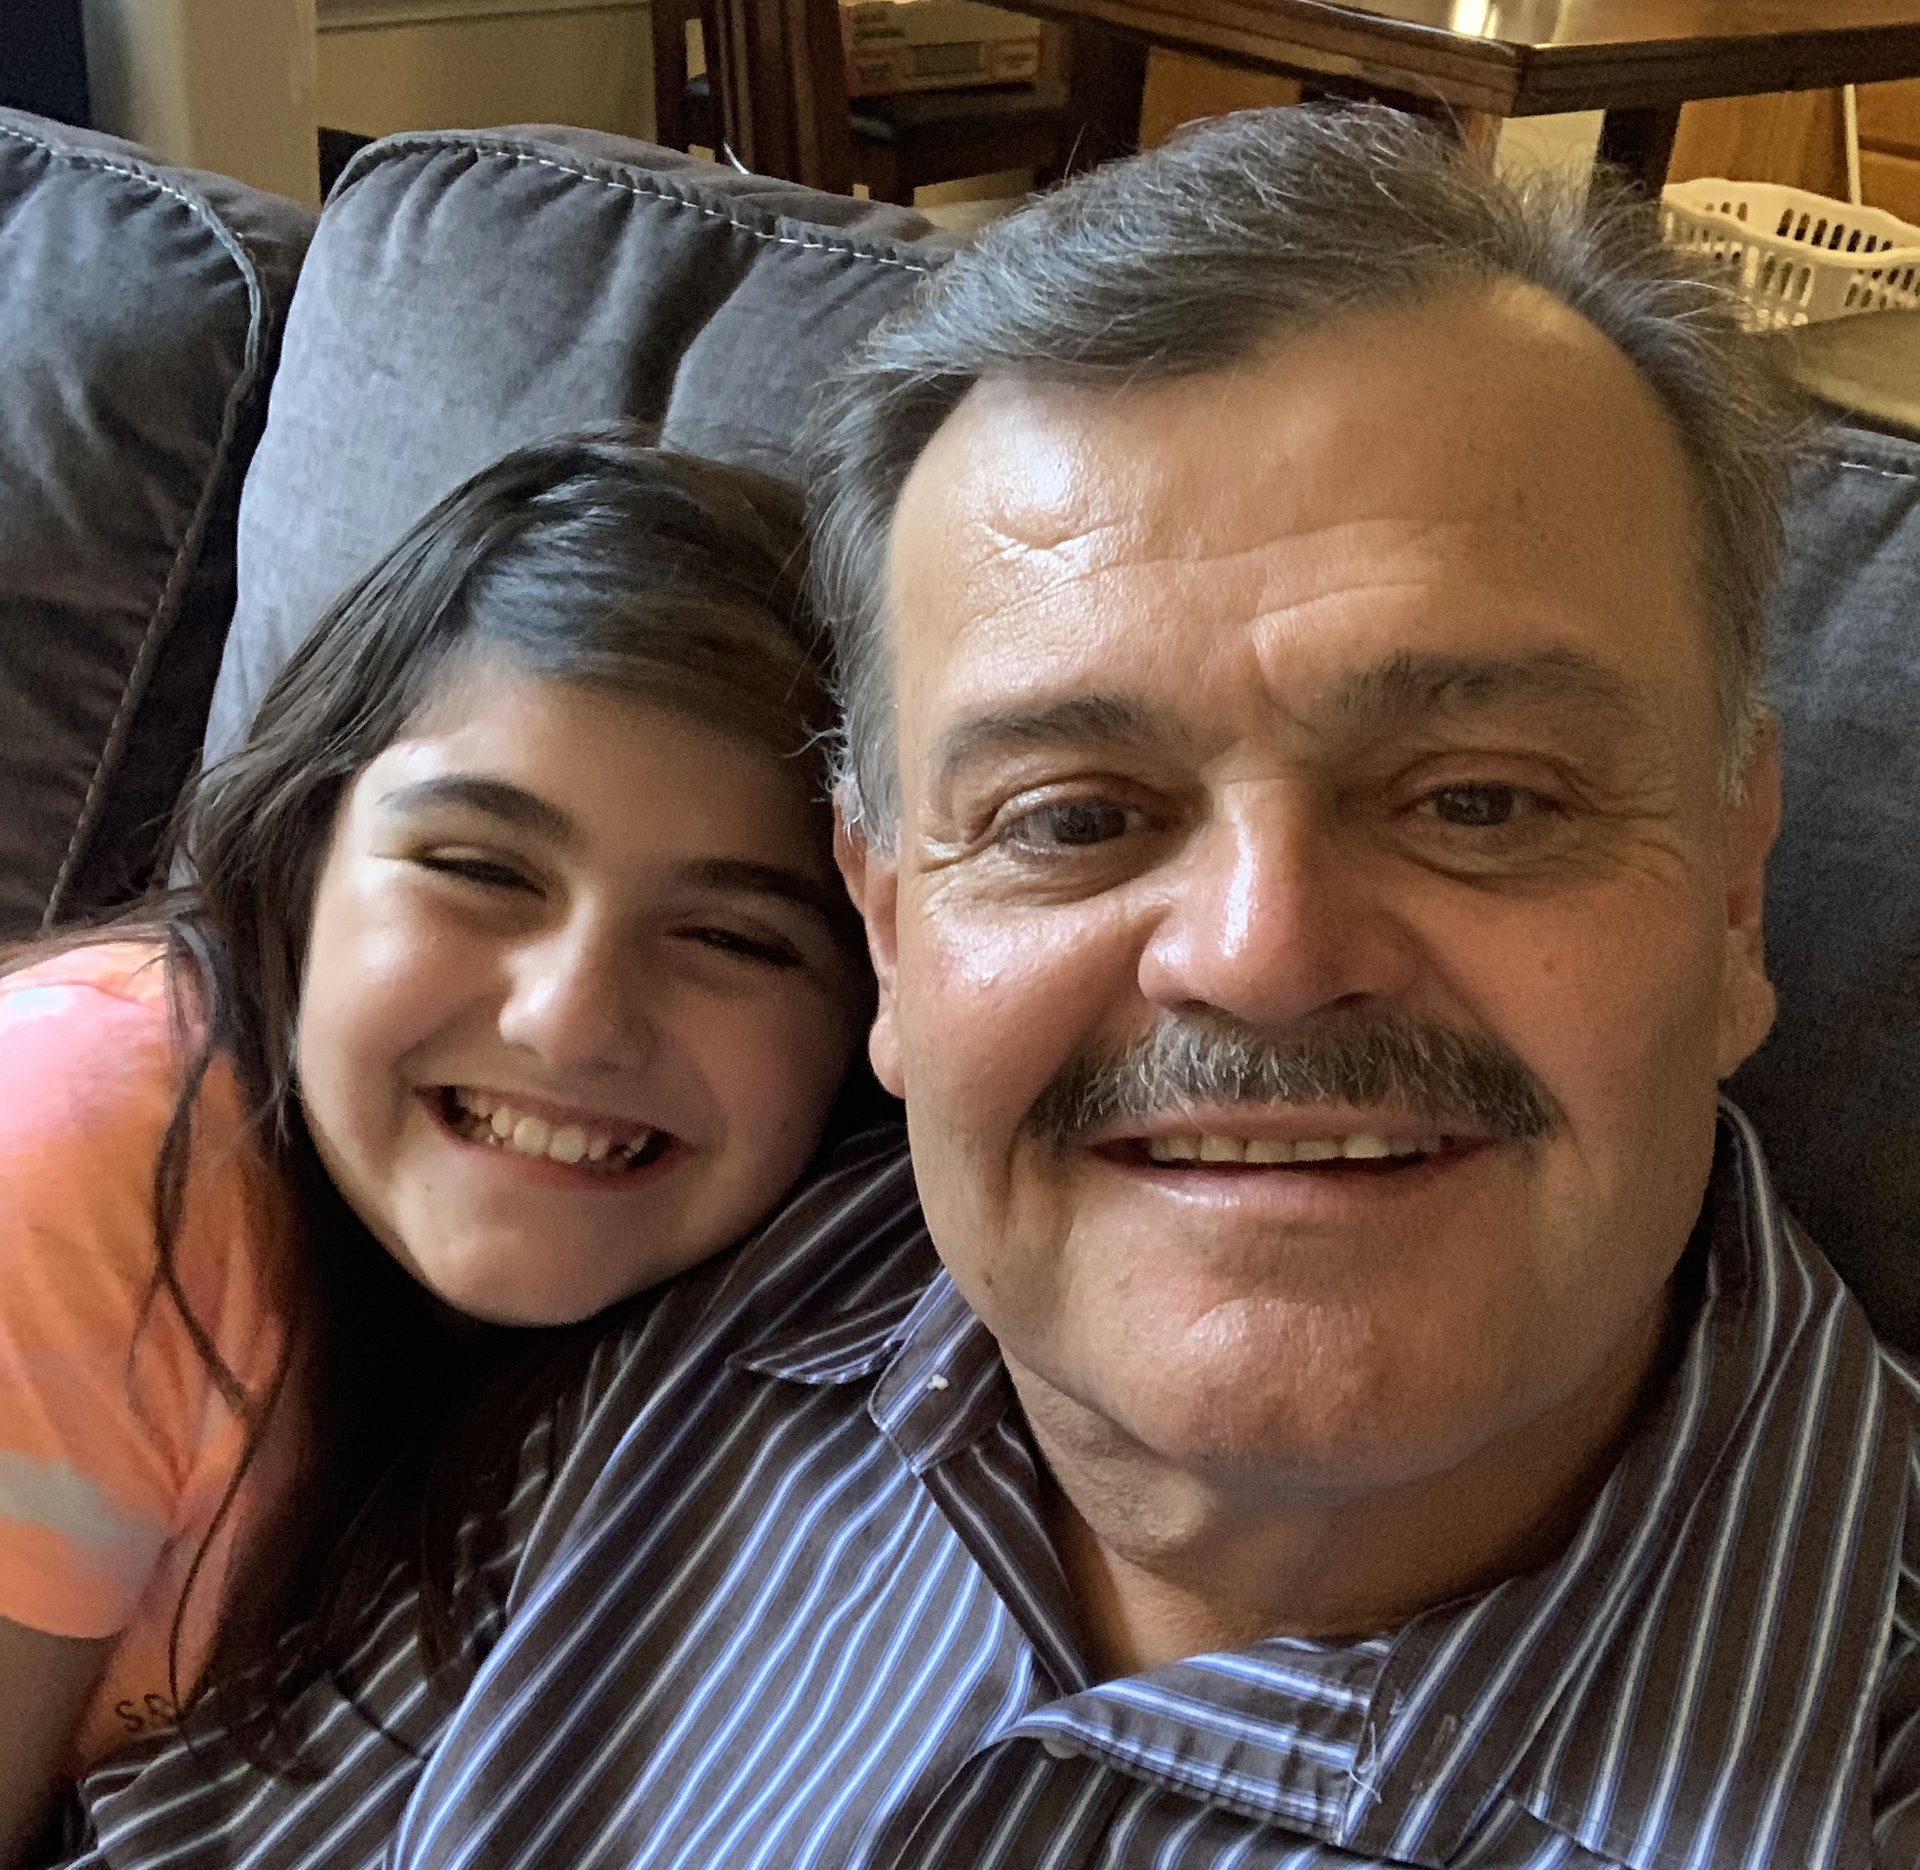 Phillip Sonoqui with his 10-year-old daughter Yolie.